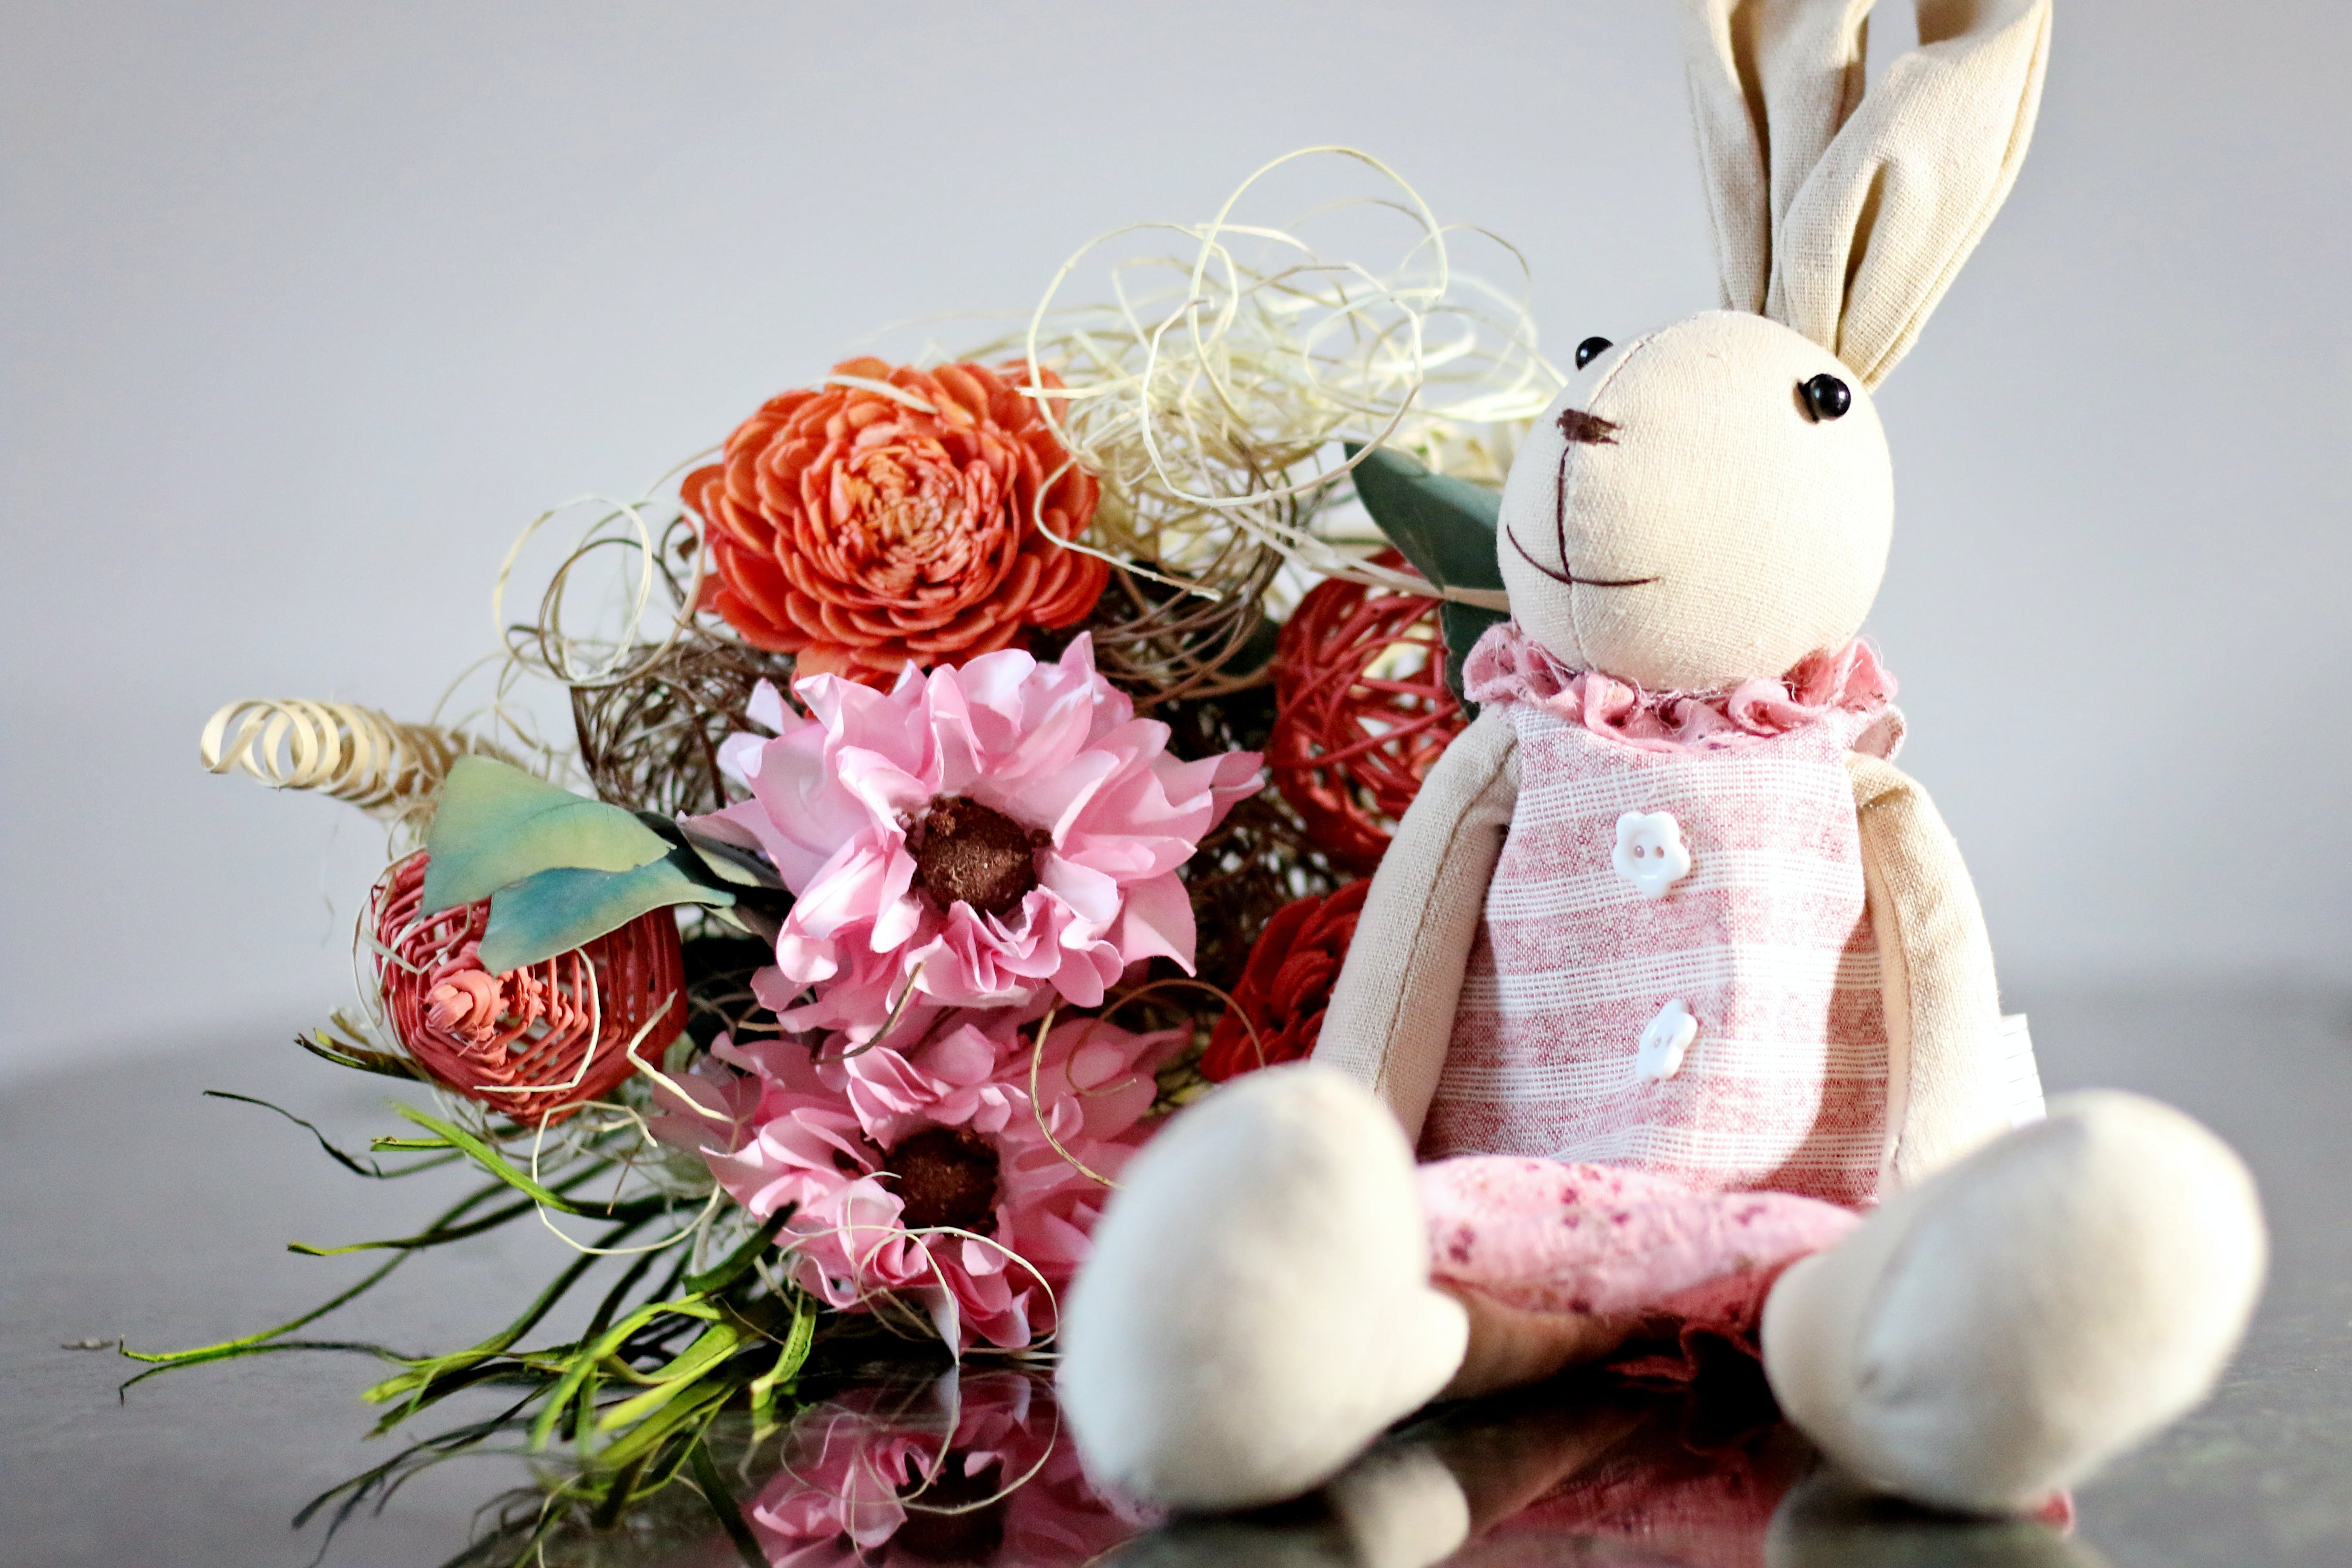 Beige Bunny Plush Toy With Pink Cloth